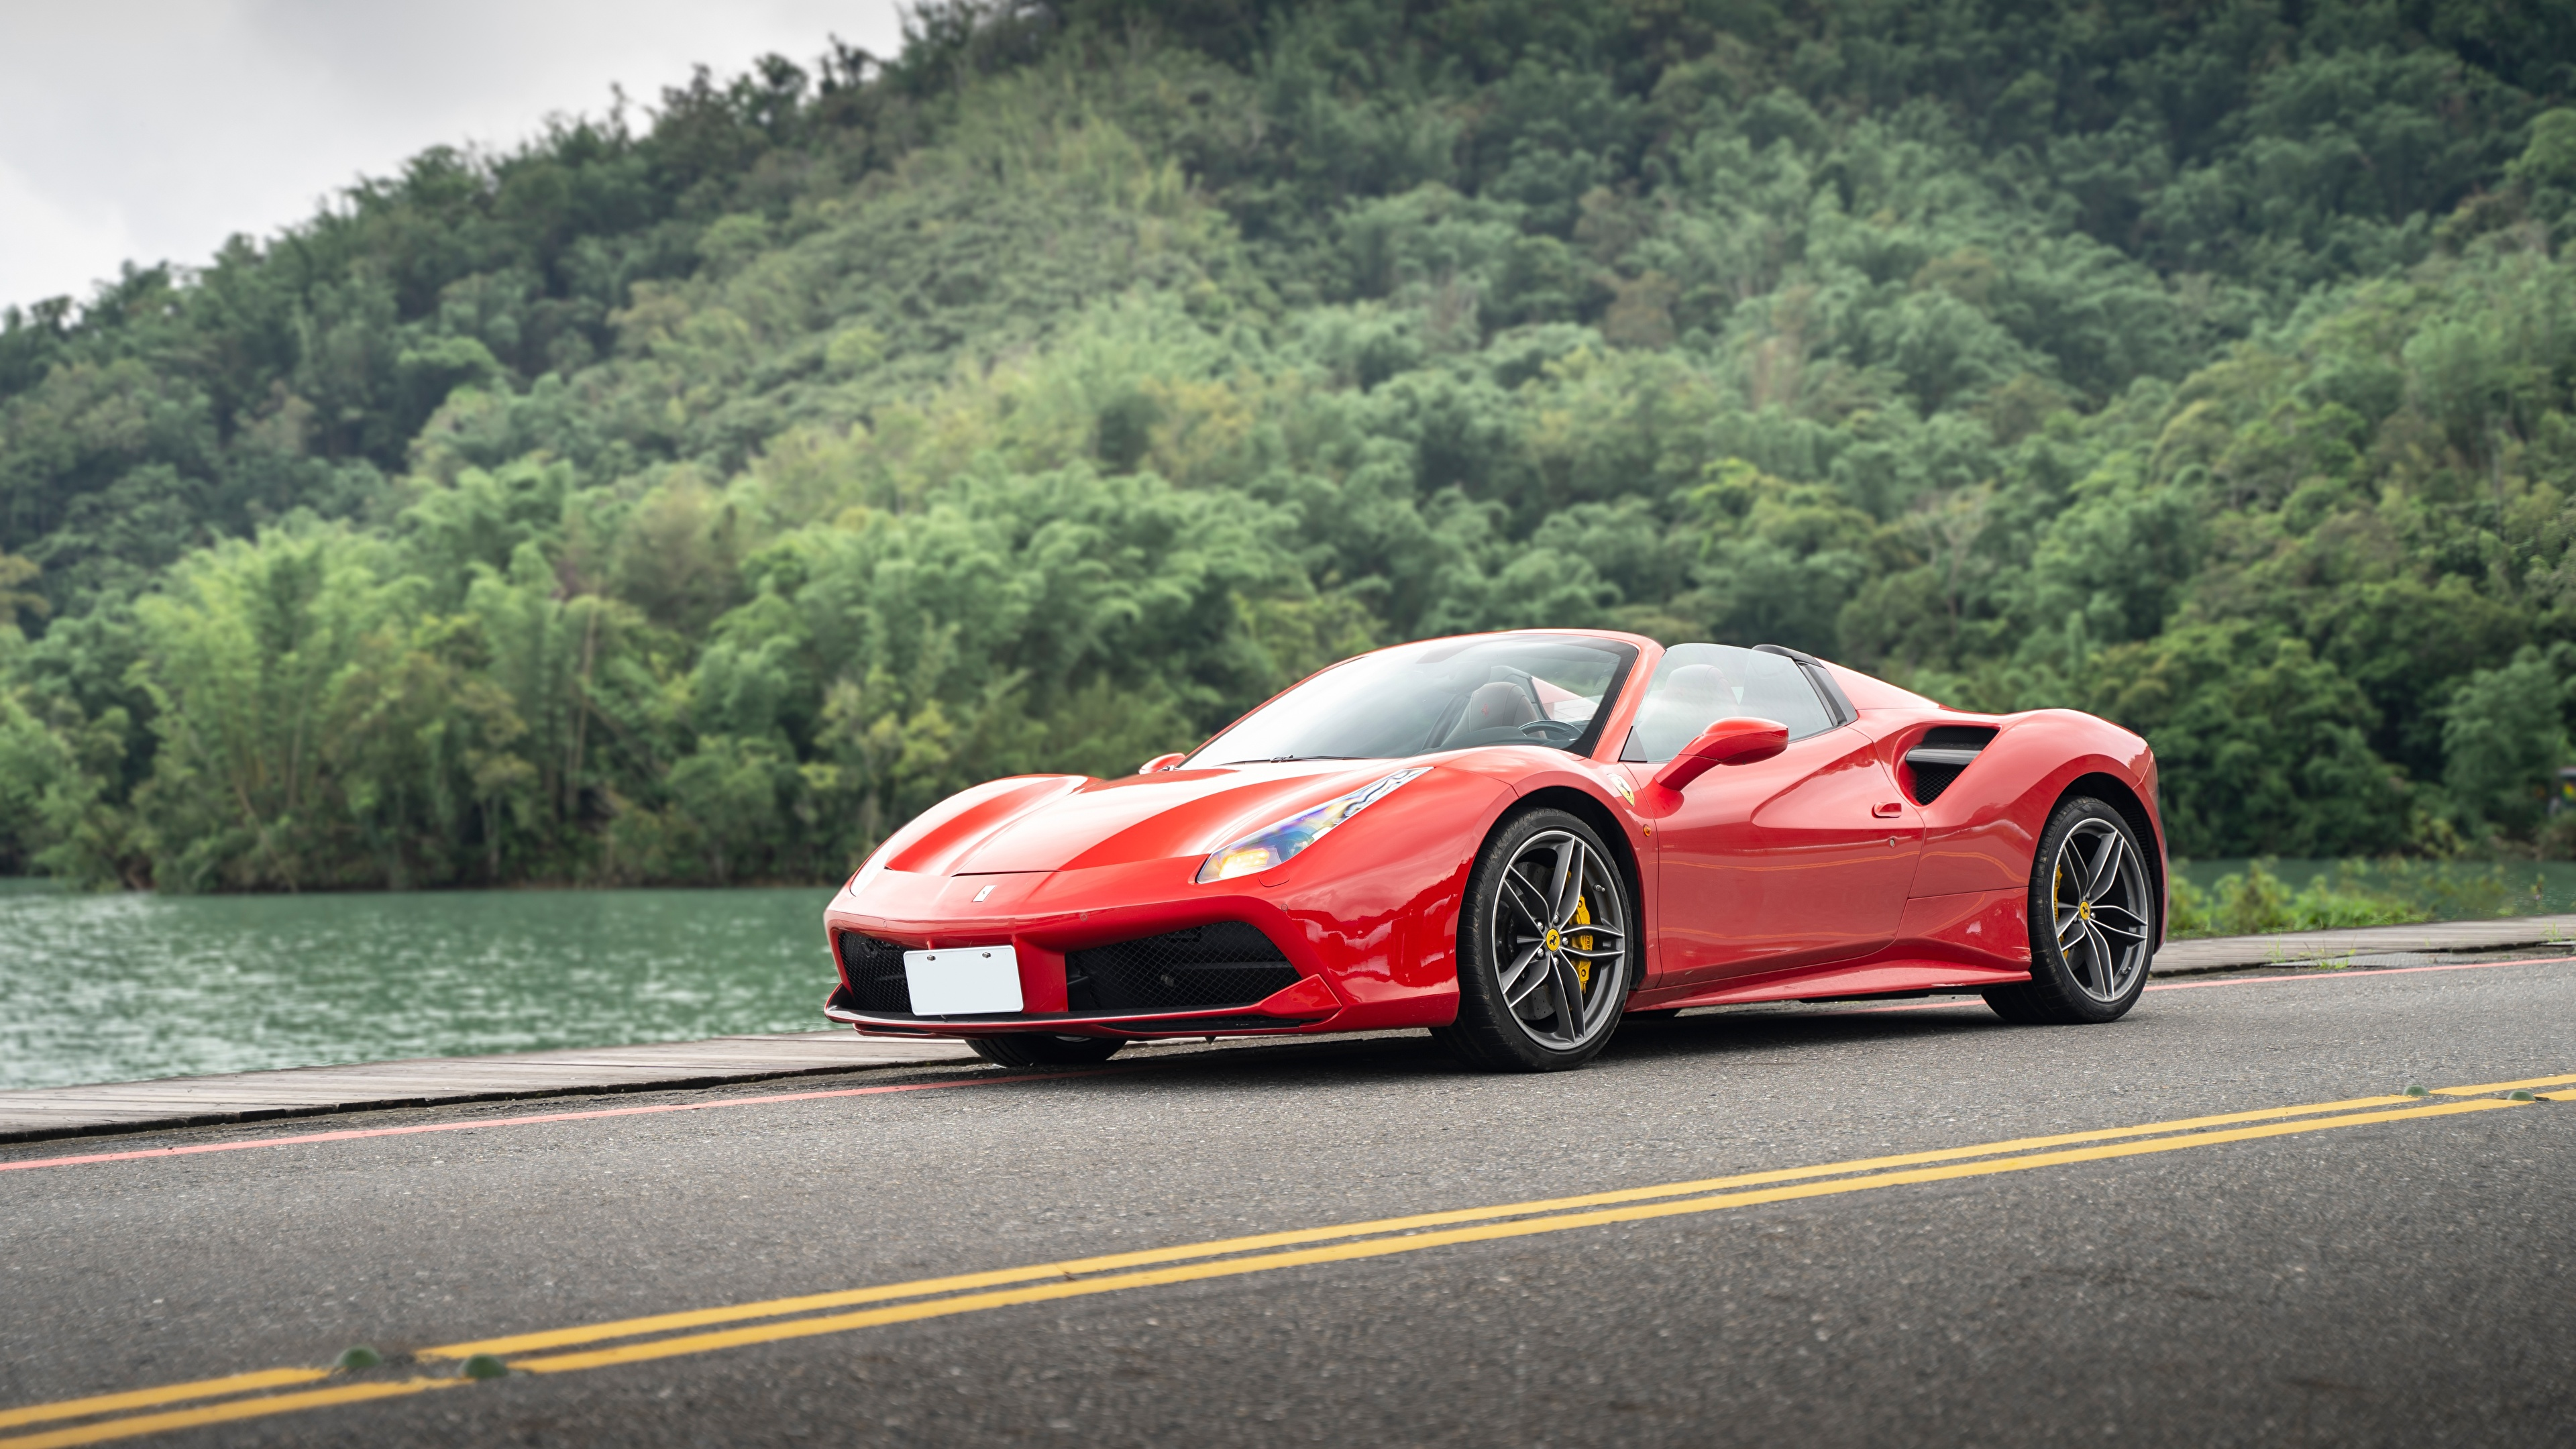 Desktop Wallpapers Ferrari 488 Spider Roadster Red Auto 3840x2160